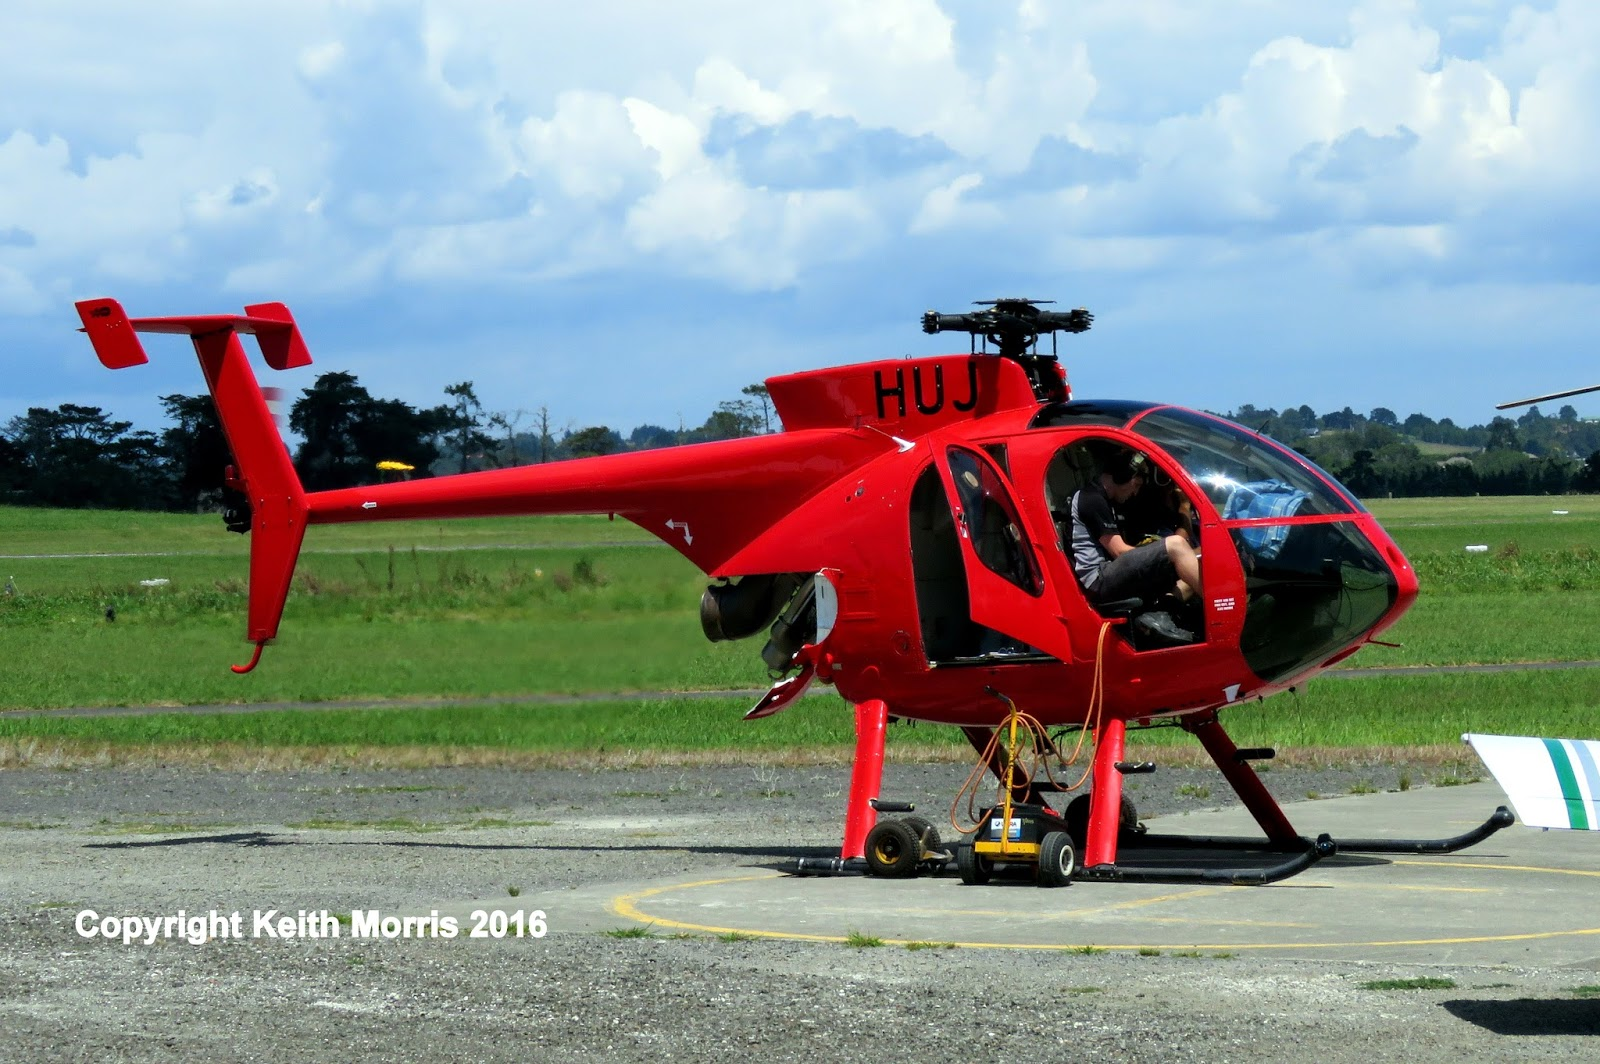 NZ Civil Aircraft North Shore Airfield Helicopters 1022016